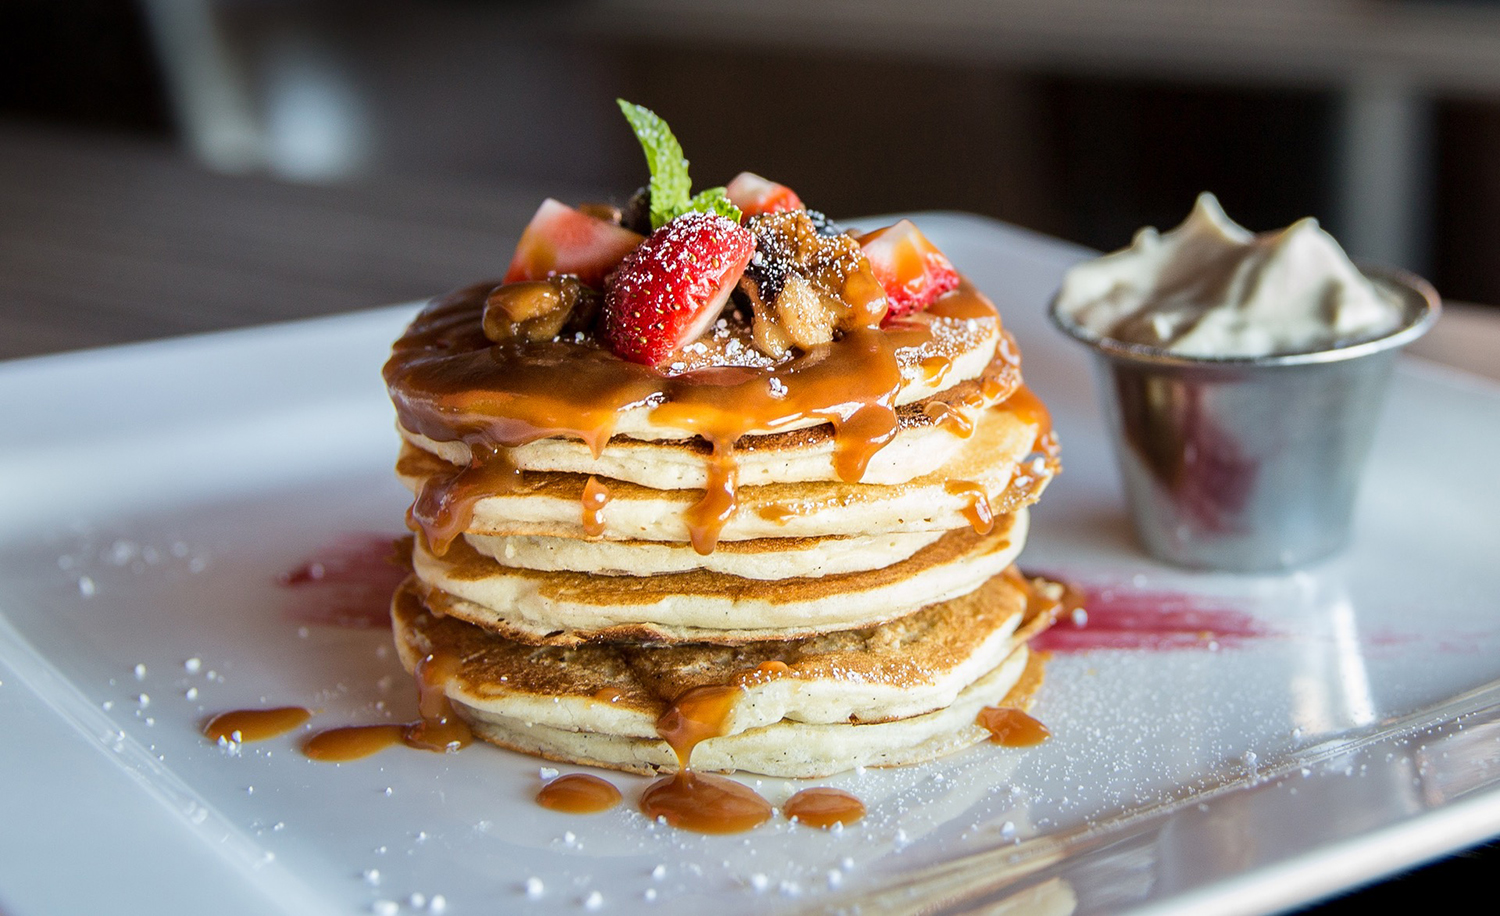 Delicious Pancakes and Strawberries